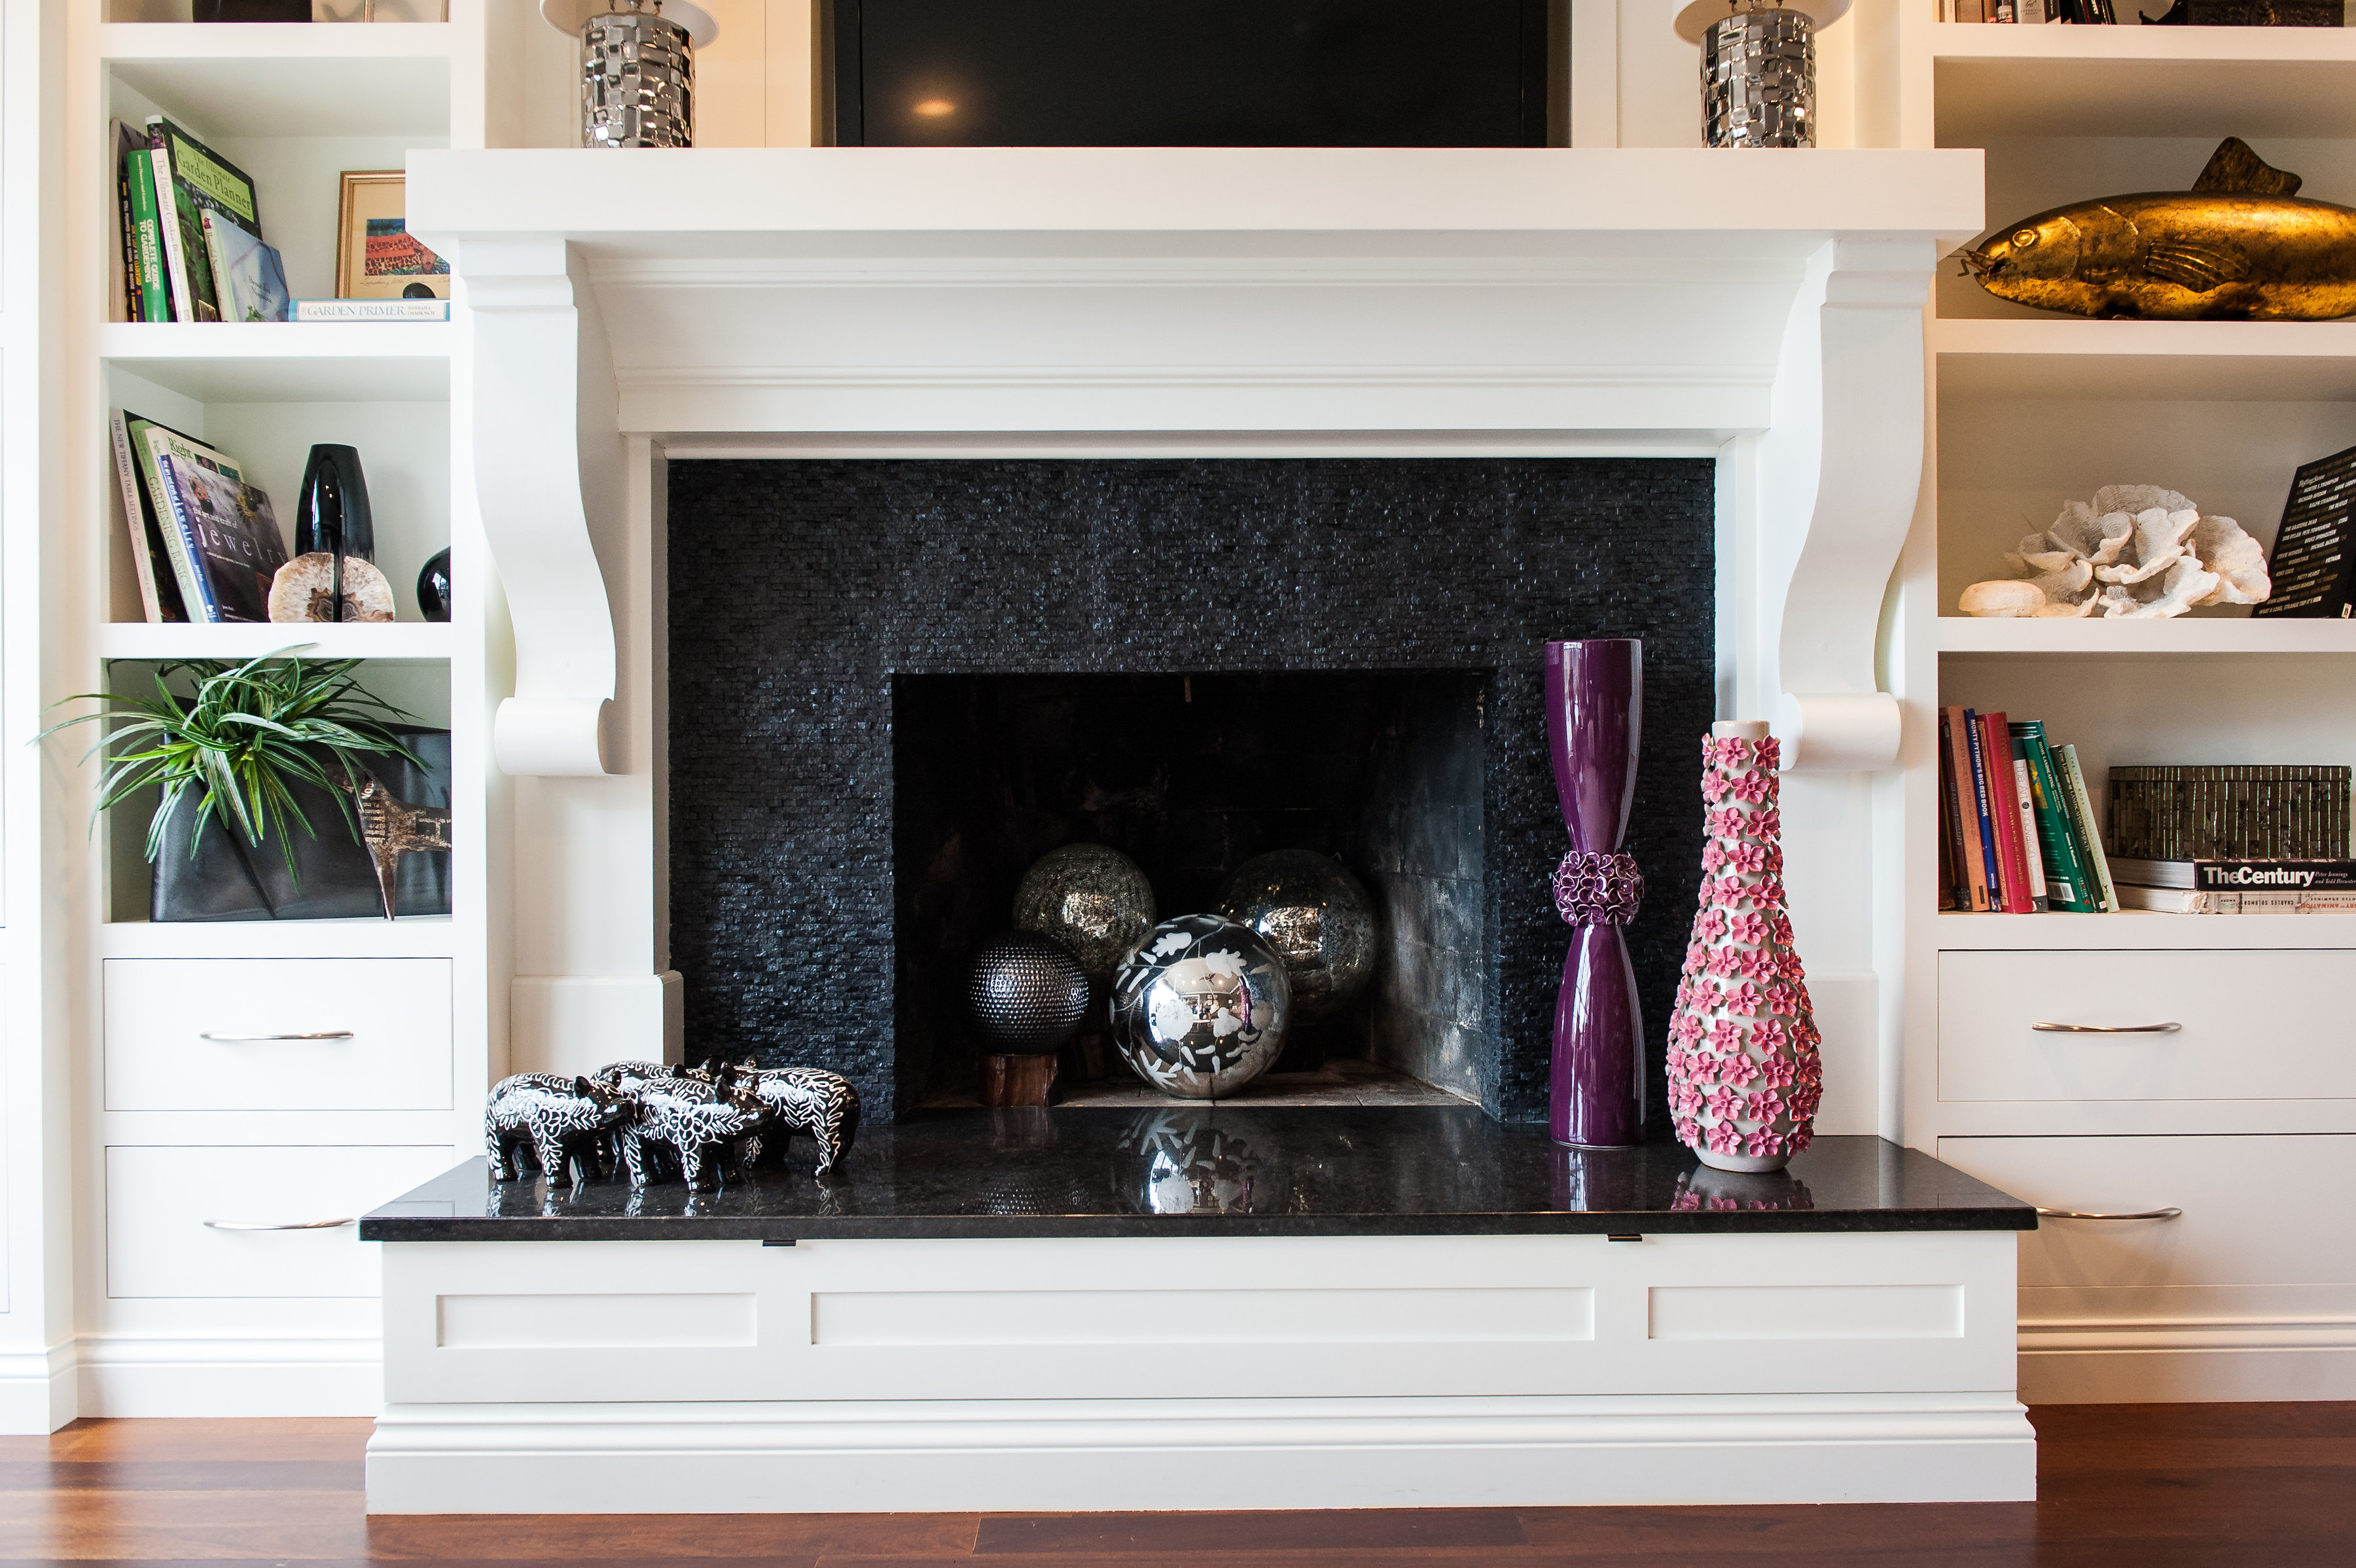 Stone Artisans Light Up Your Home With Beautiful Fireplaces